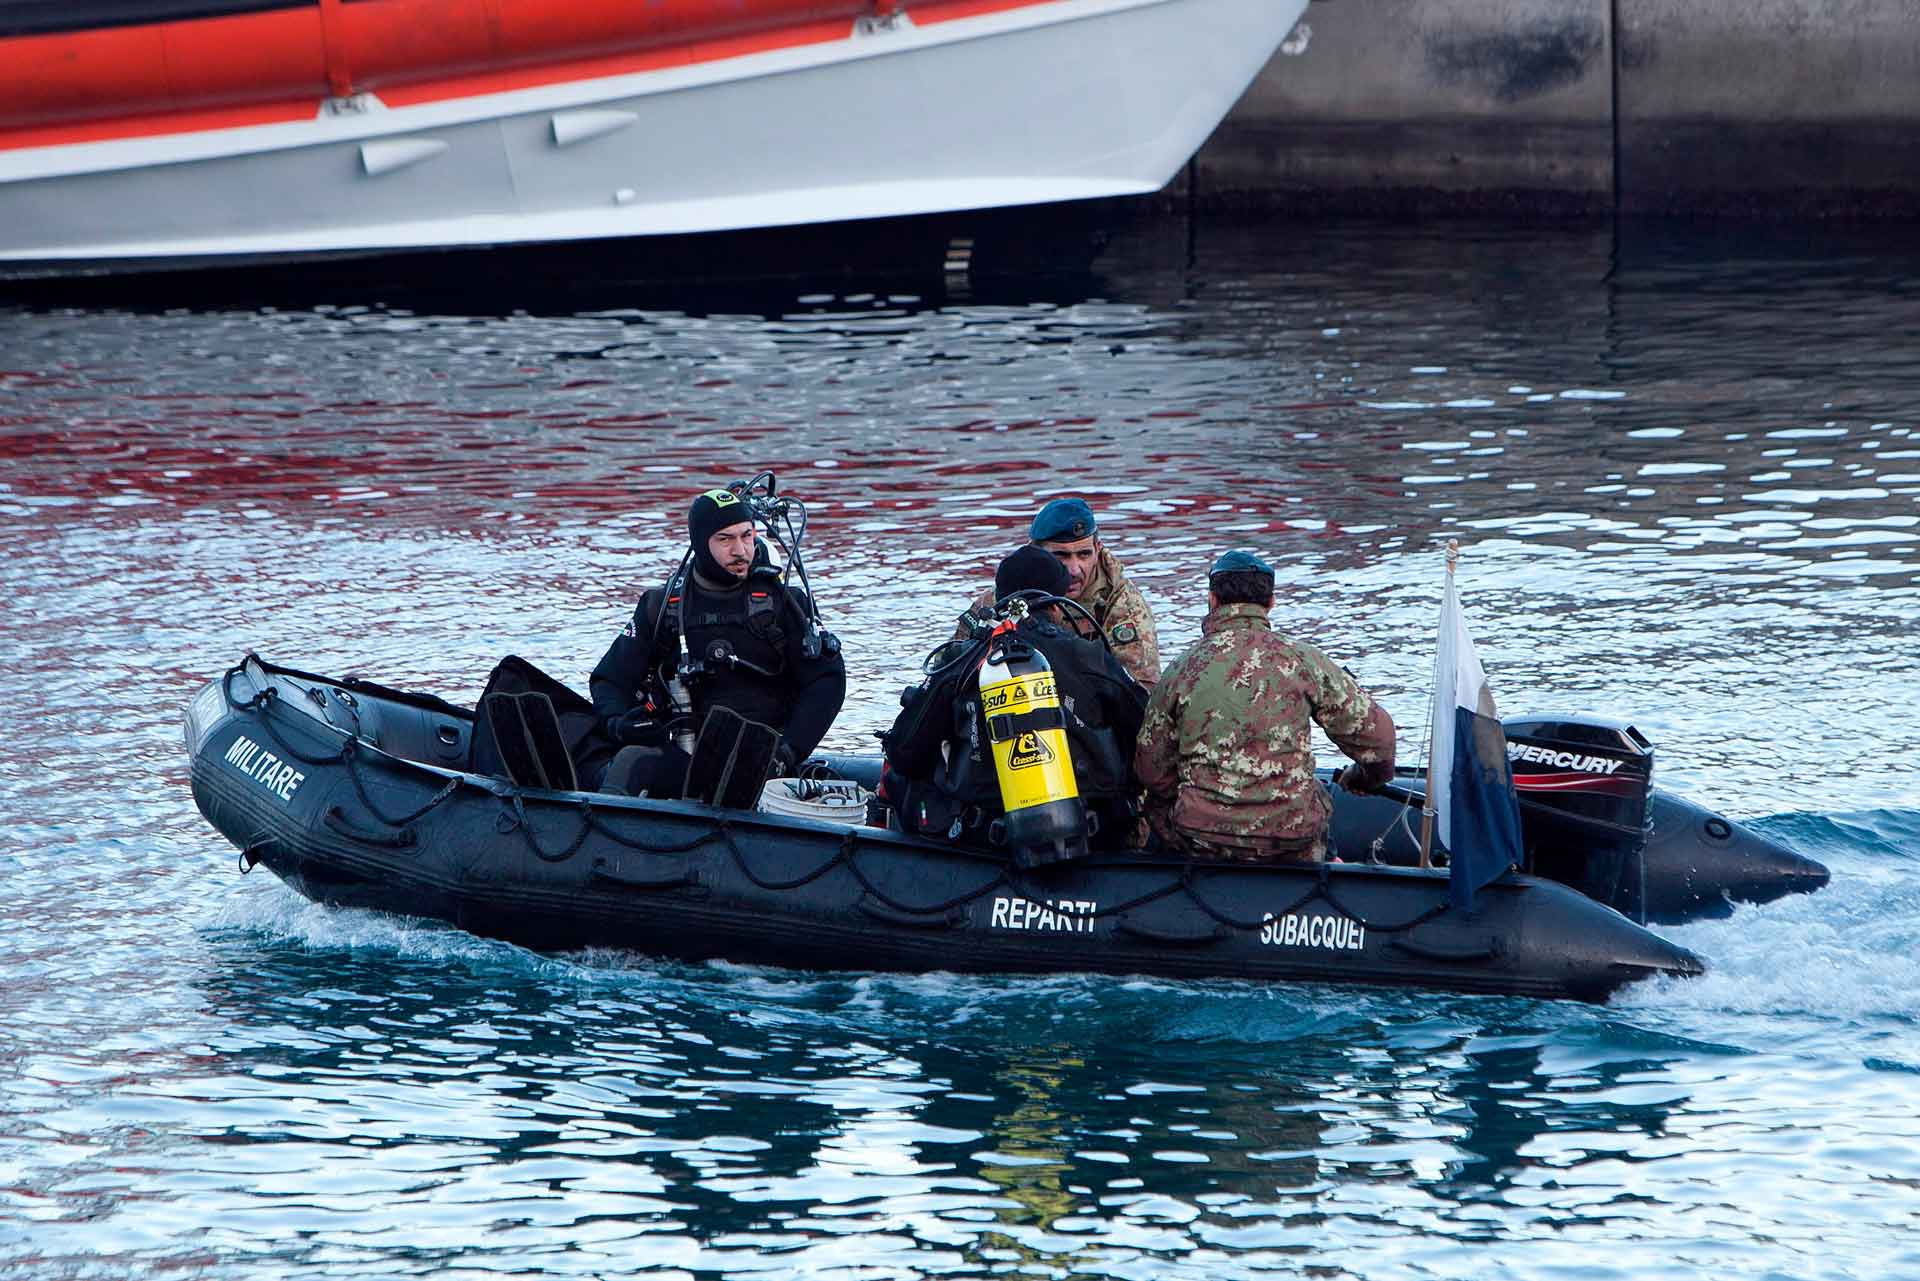 The underwater departments of the Navy intervened to search for the survivors who also used explosives to open passages between the debris and the glass of the command bridge.